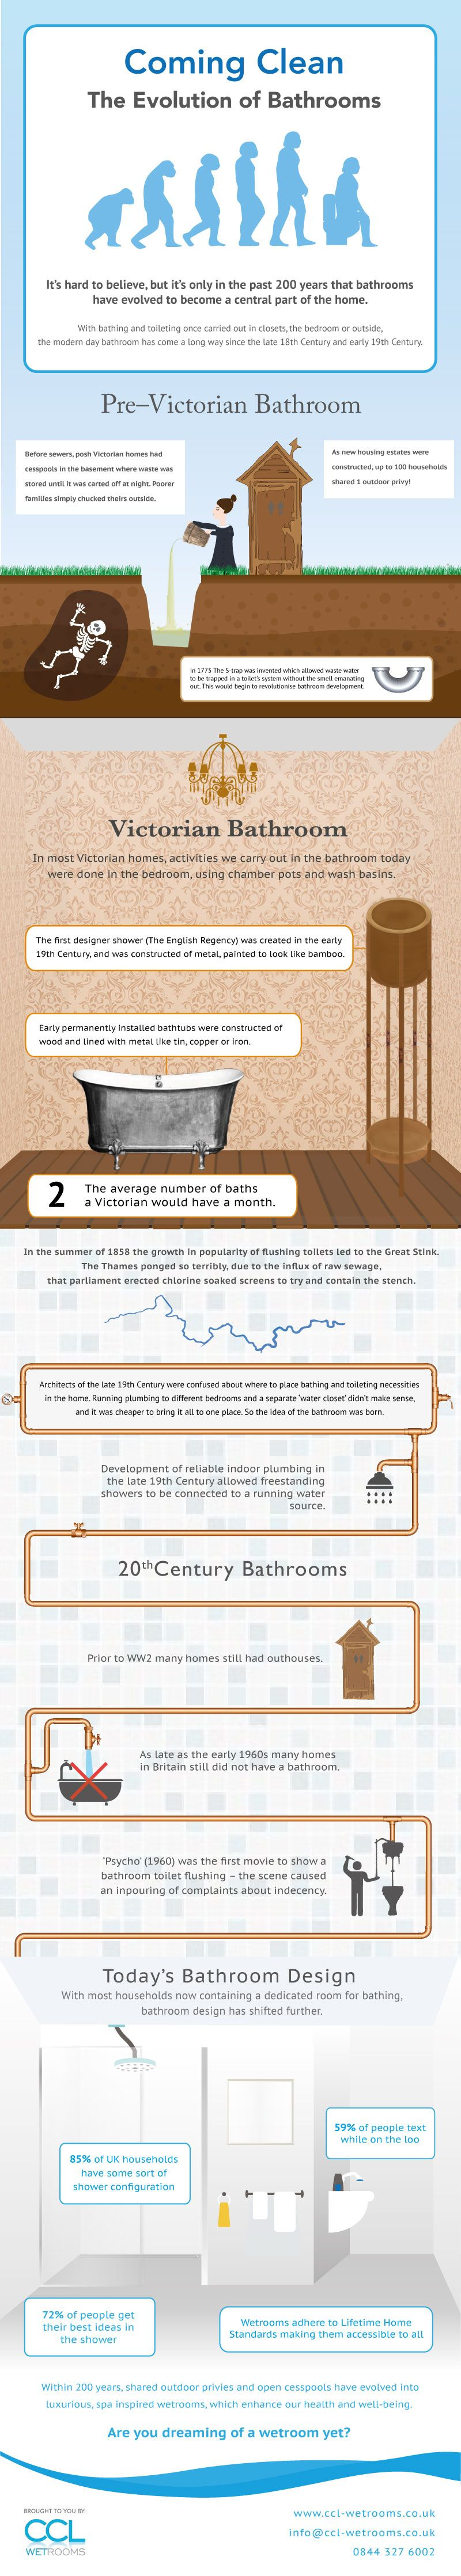 The Evolution of Bathrooms